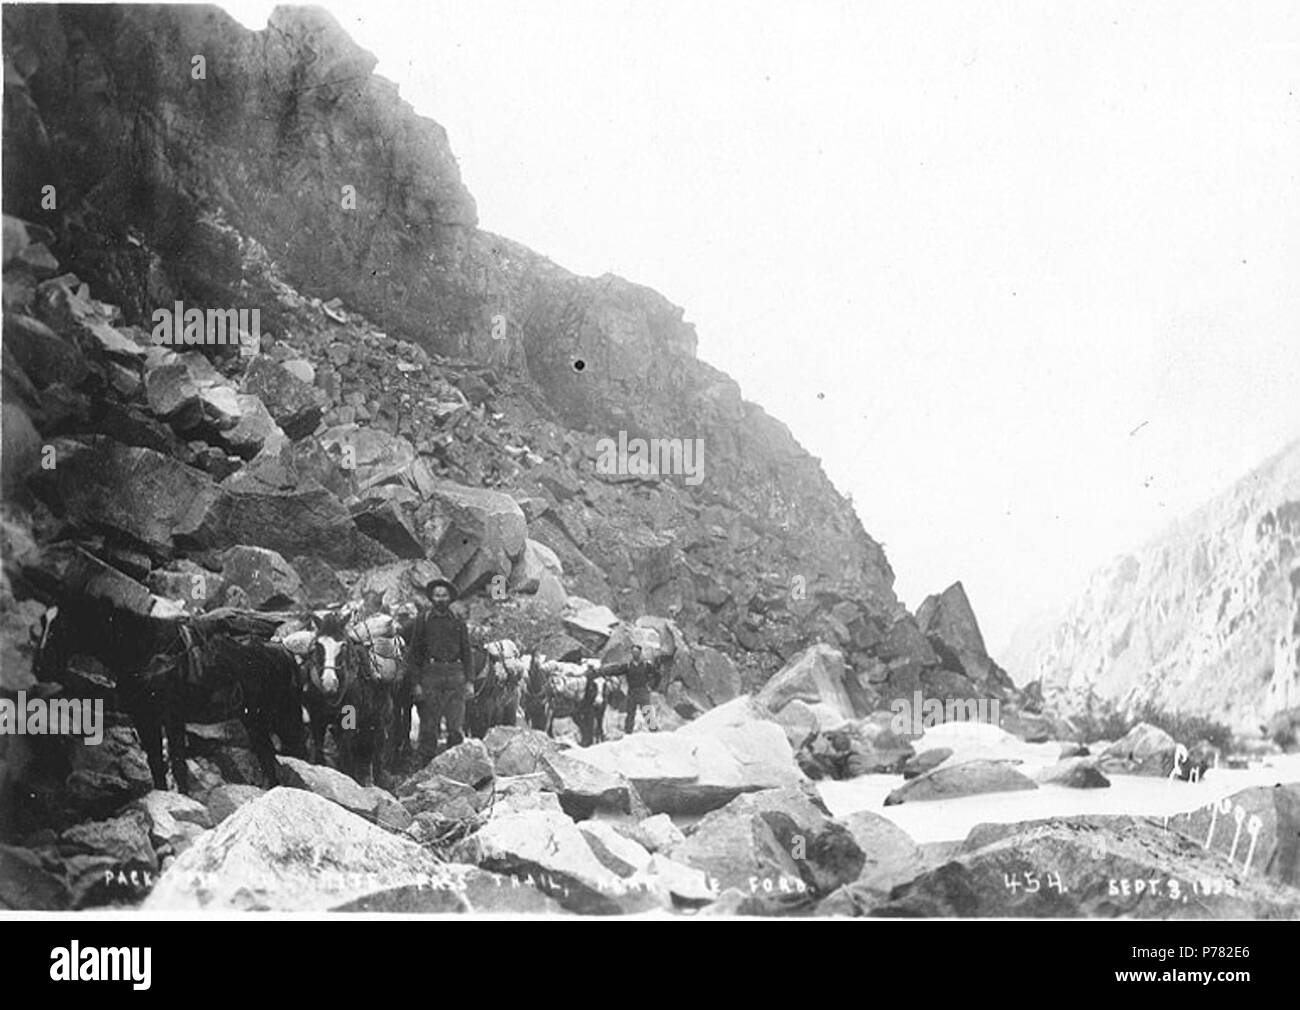 . English: Packtrain on White Pass Trail near the ford crossing the Skagway River, Alaska, September 3, 1898 . English: Probably close to the summit of White Pass . Caption on image: 'Packtrain on White Pass Trail. Near the Ford. Sept. 3, 1898' . Klondike Gold Rush Subjects (LCTGM): Pack animals--Alaska; Horses--Alaska Subjects (LCSH): Mountain passes--Alaska; White Pass Trail; Trails--Alaska  . 1898 10 Packtrain on White Pass Trail near the ford crossing the Skagway River, Alaska, September 3, 1898 (HEGG 488) - Stock Image